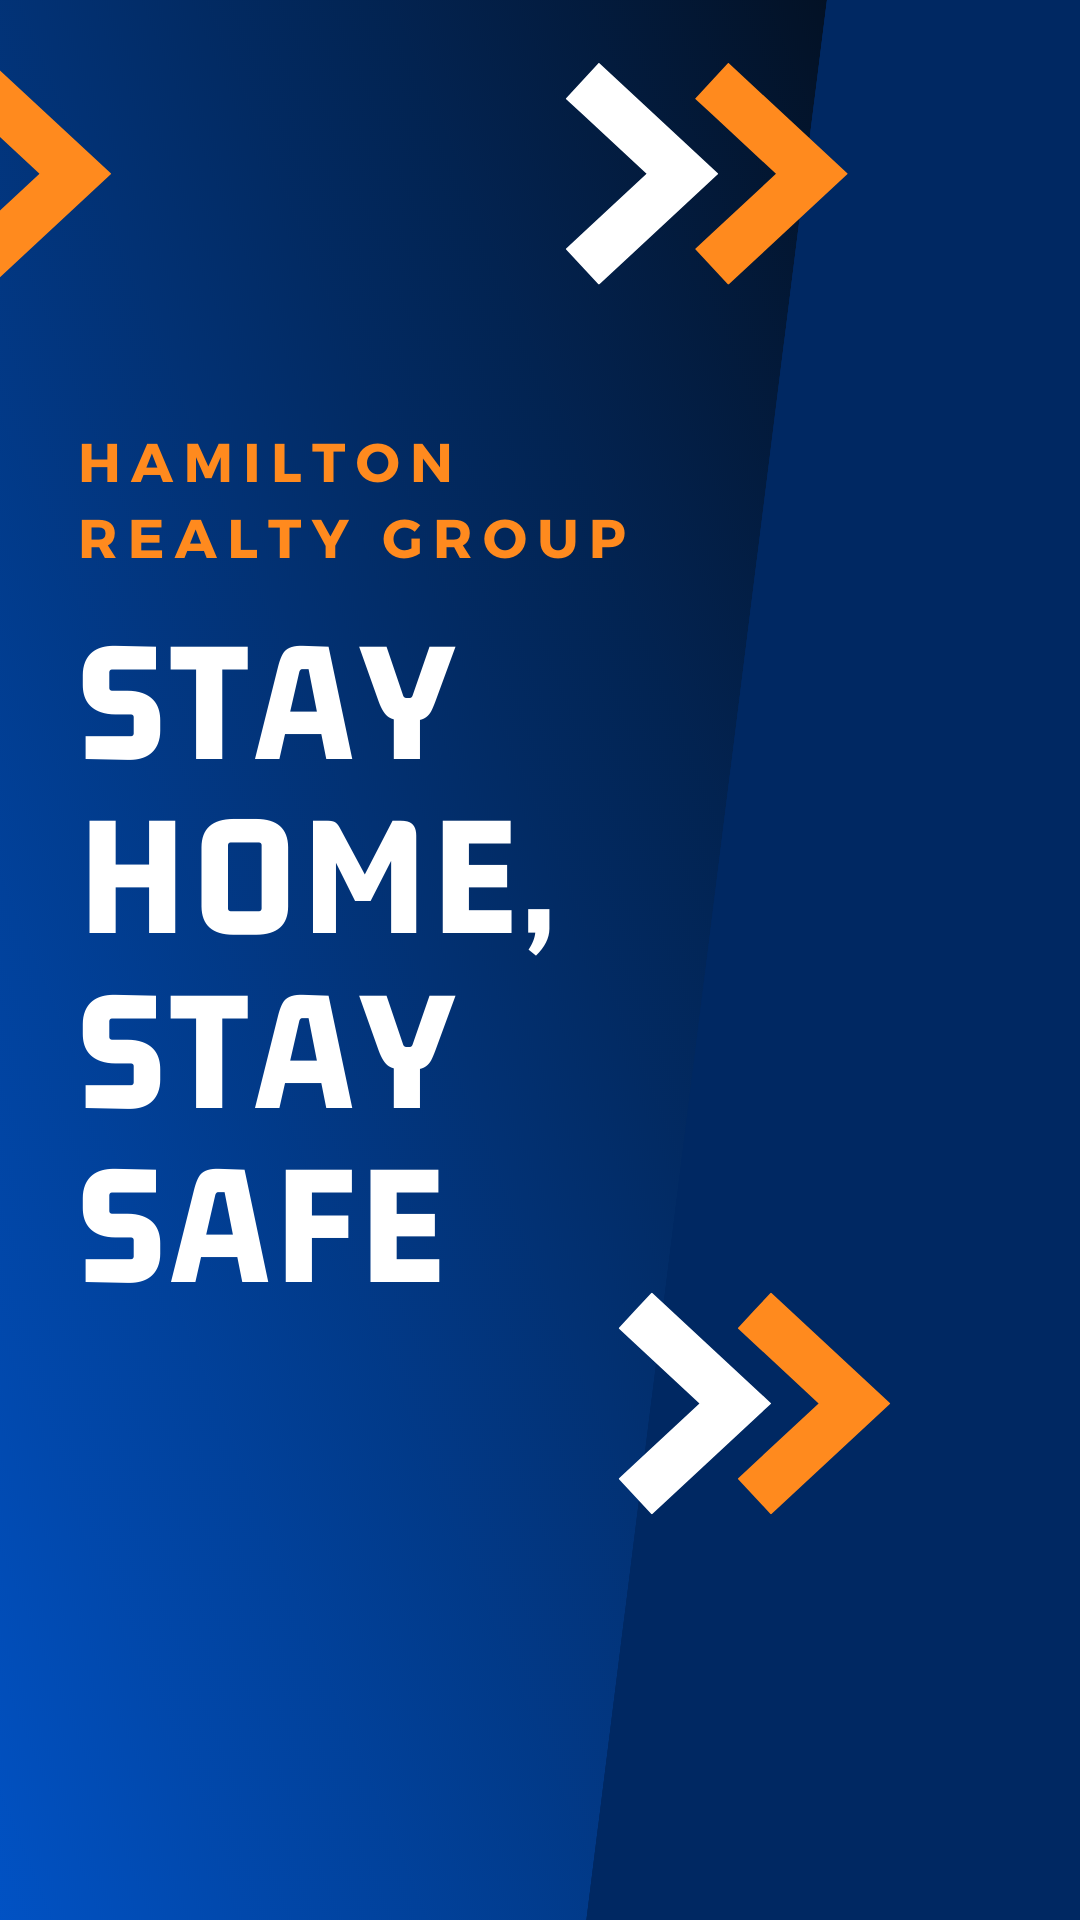 A Special Message from Hamilton Realty Group